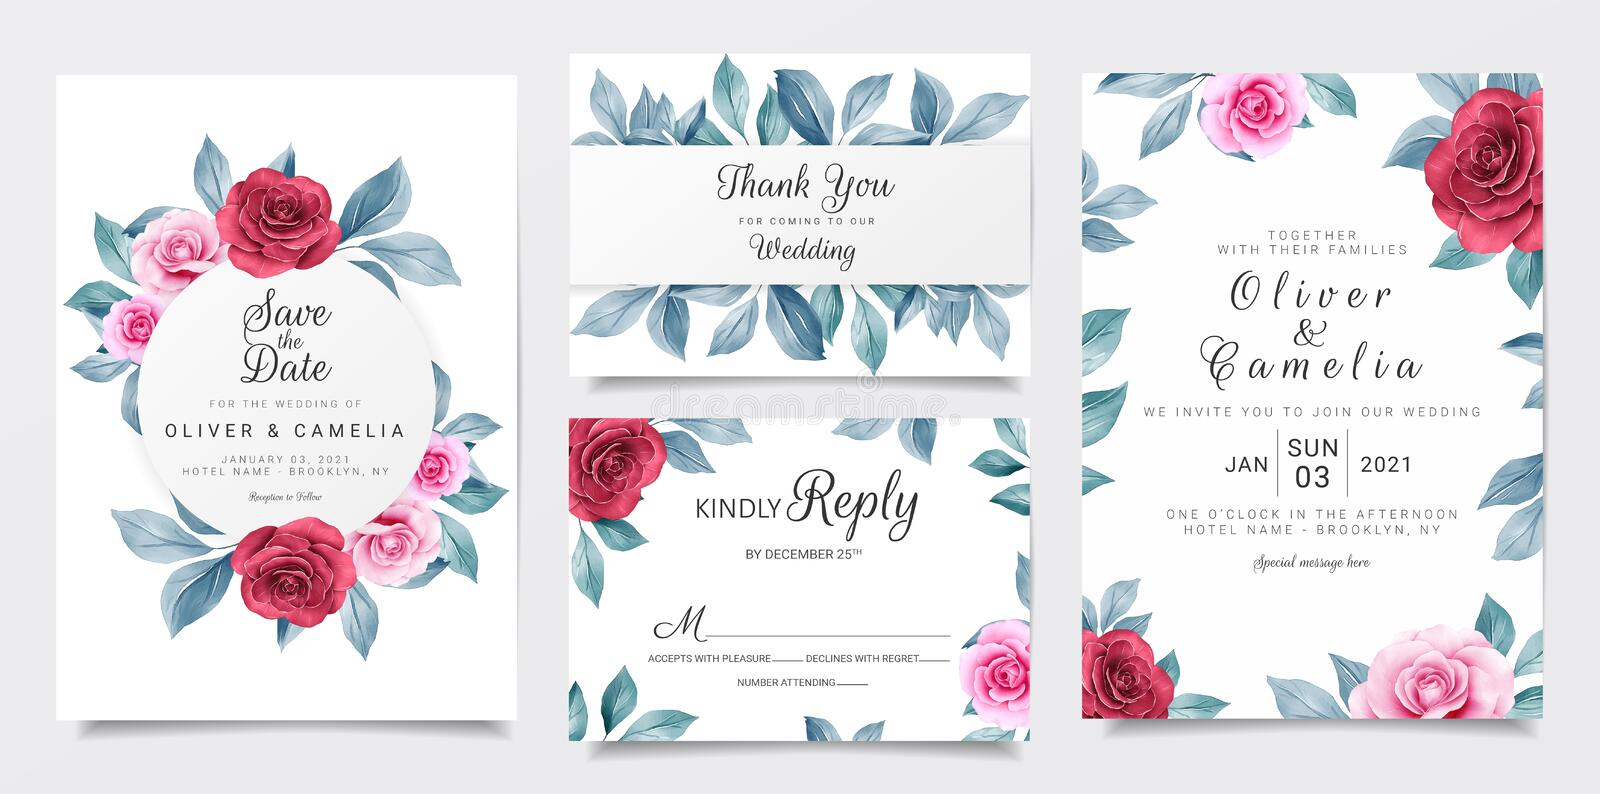 Wedding invitation card template set with maroon and navy watercolor flowers decoration 玫瑰叶植物学插图 皇族释放例证